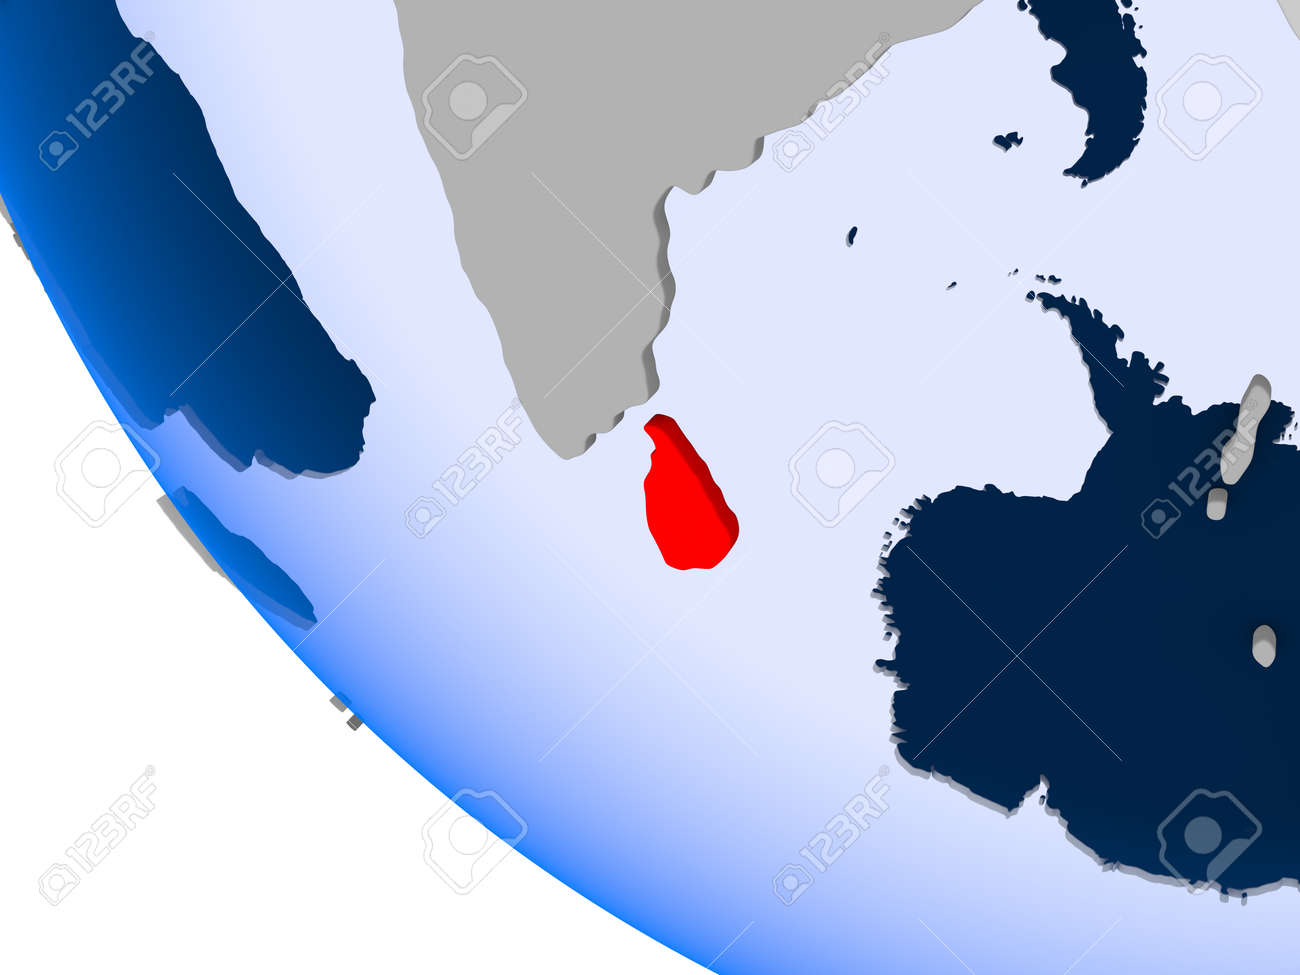 Map Of Sri Lanka In Red On Political Globe With Transparent Oceans ...